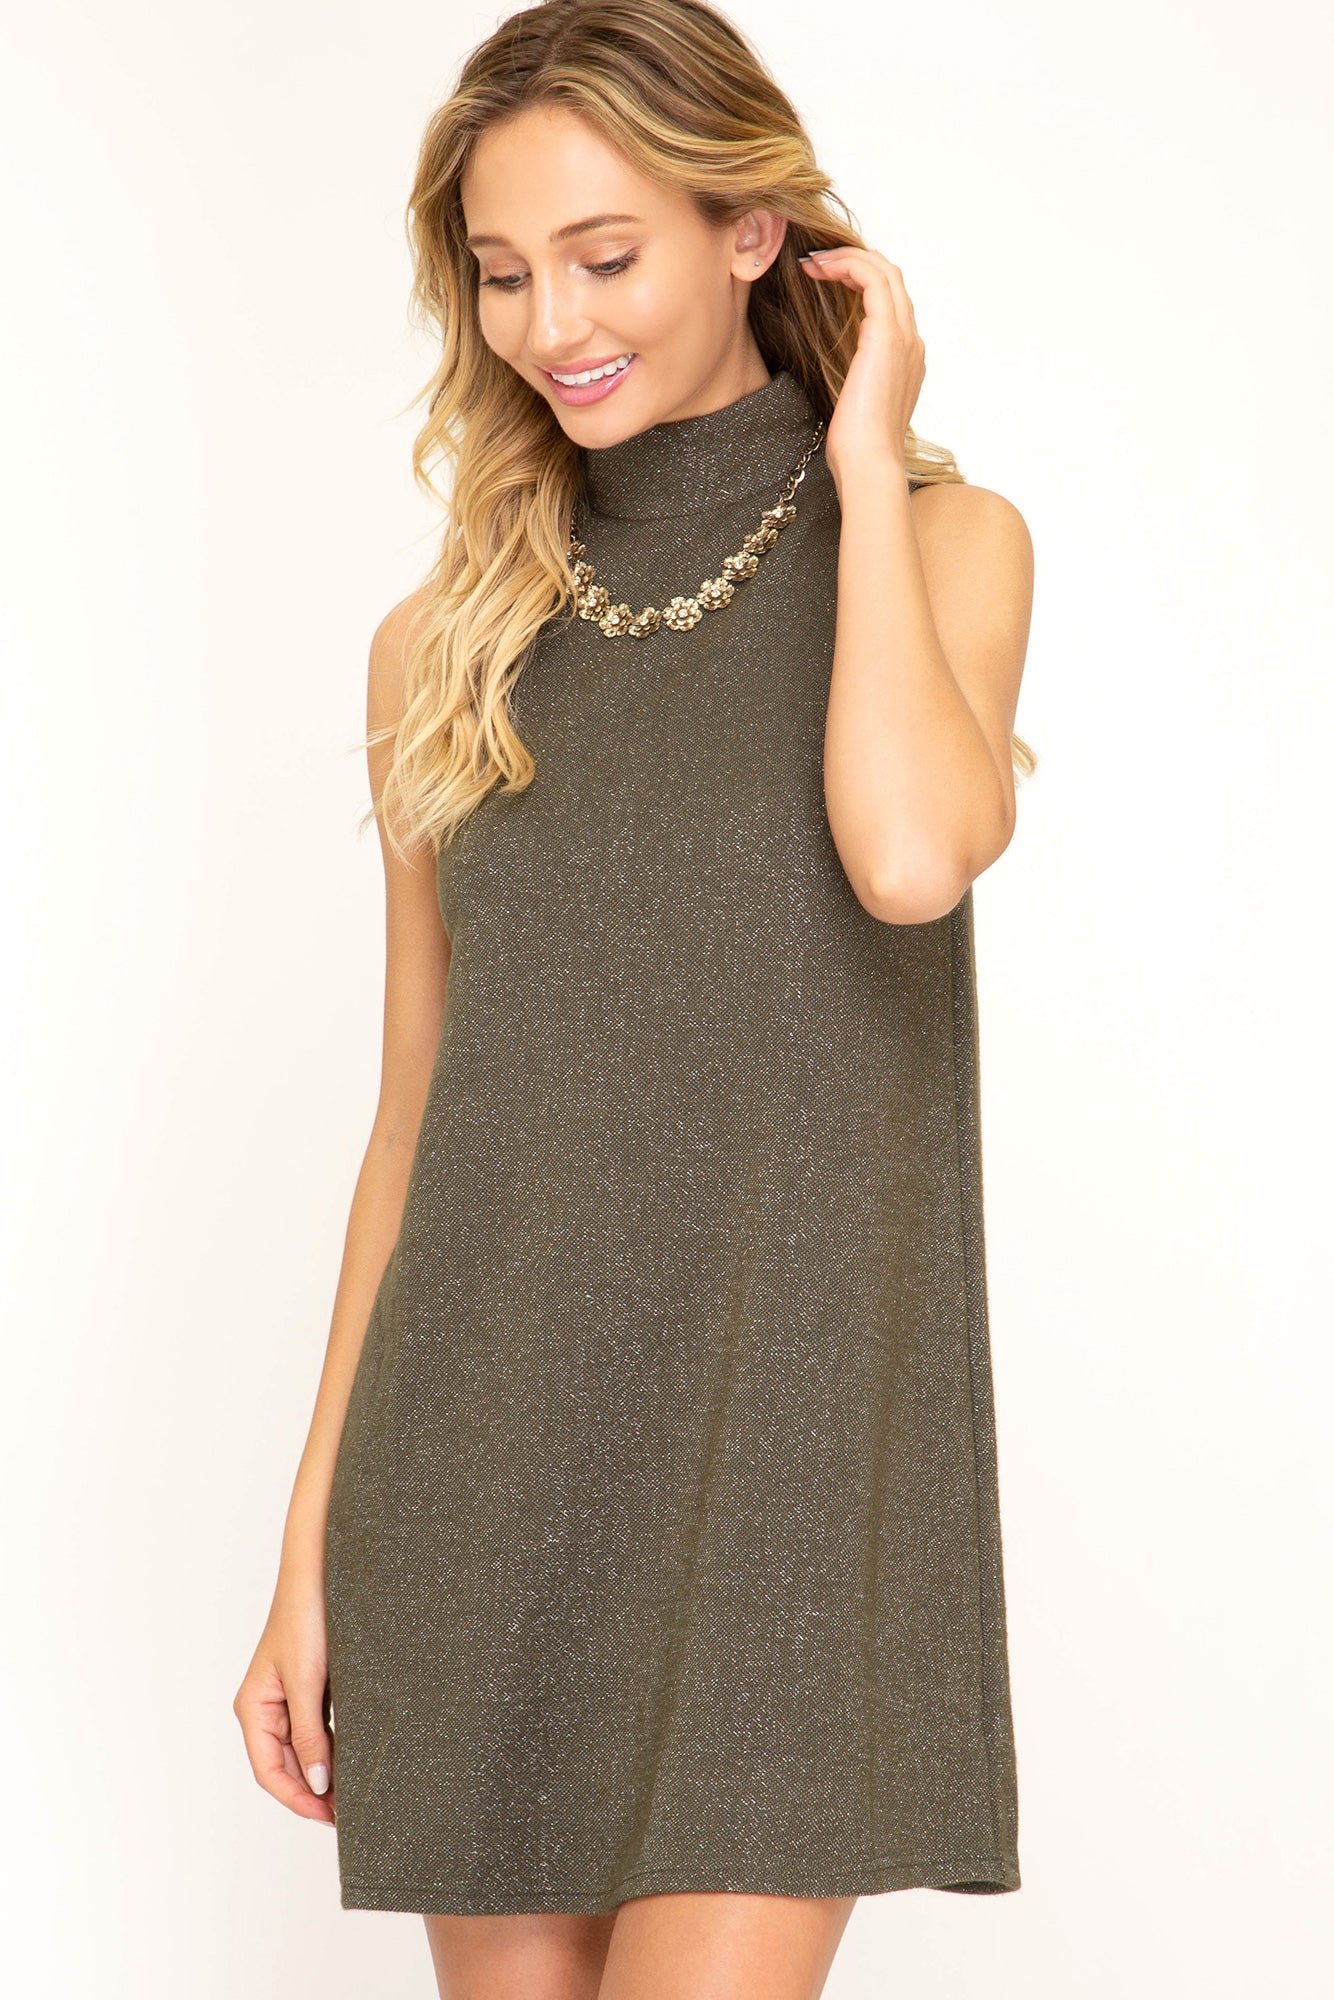 Hint of Shimmer Dress